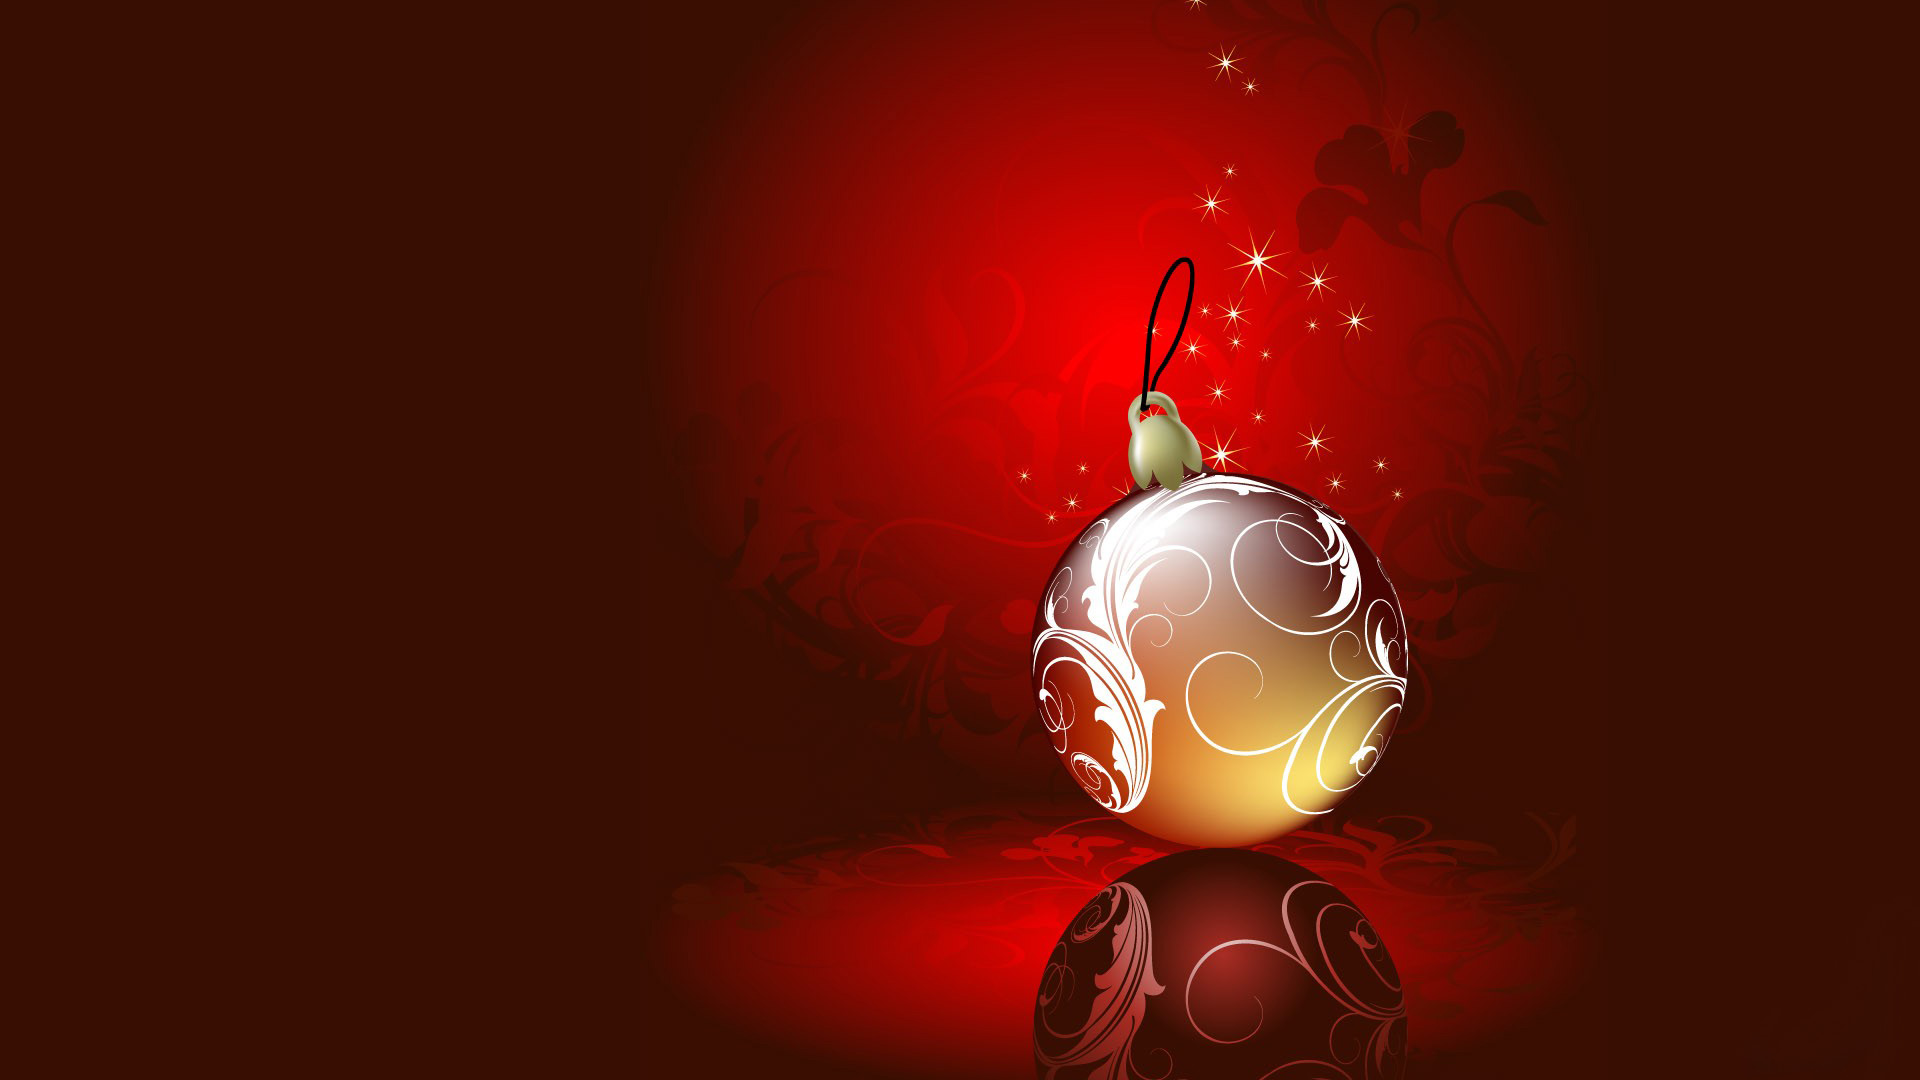 New Year Windows 7 background hd Wallpaper and make this wallpaper for 1920x1080